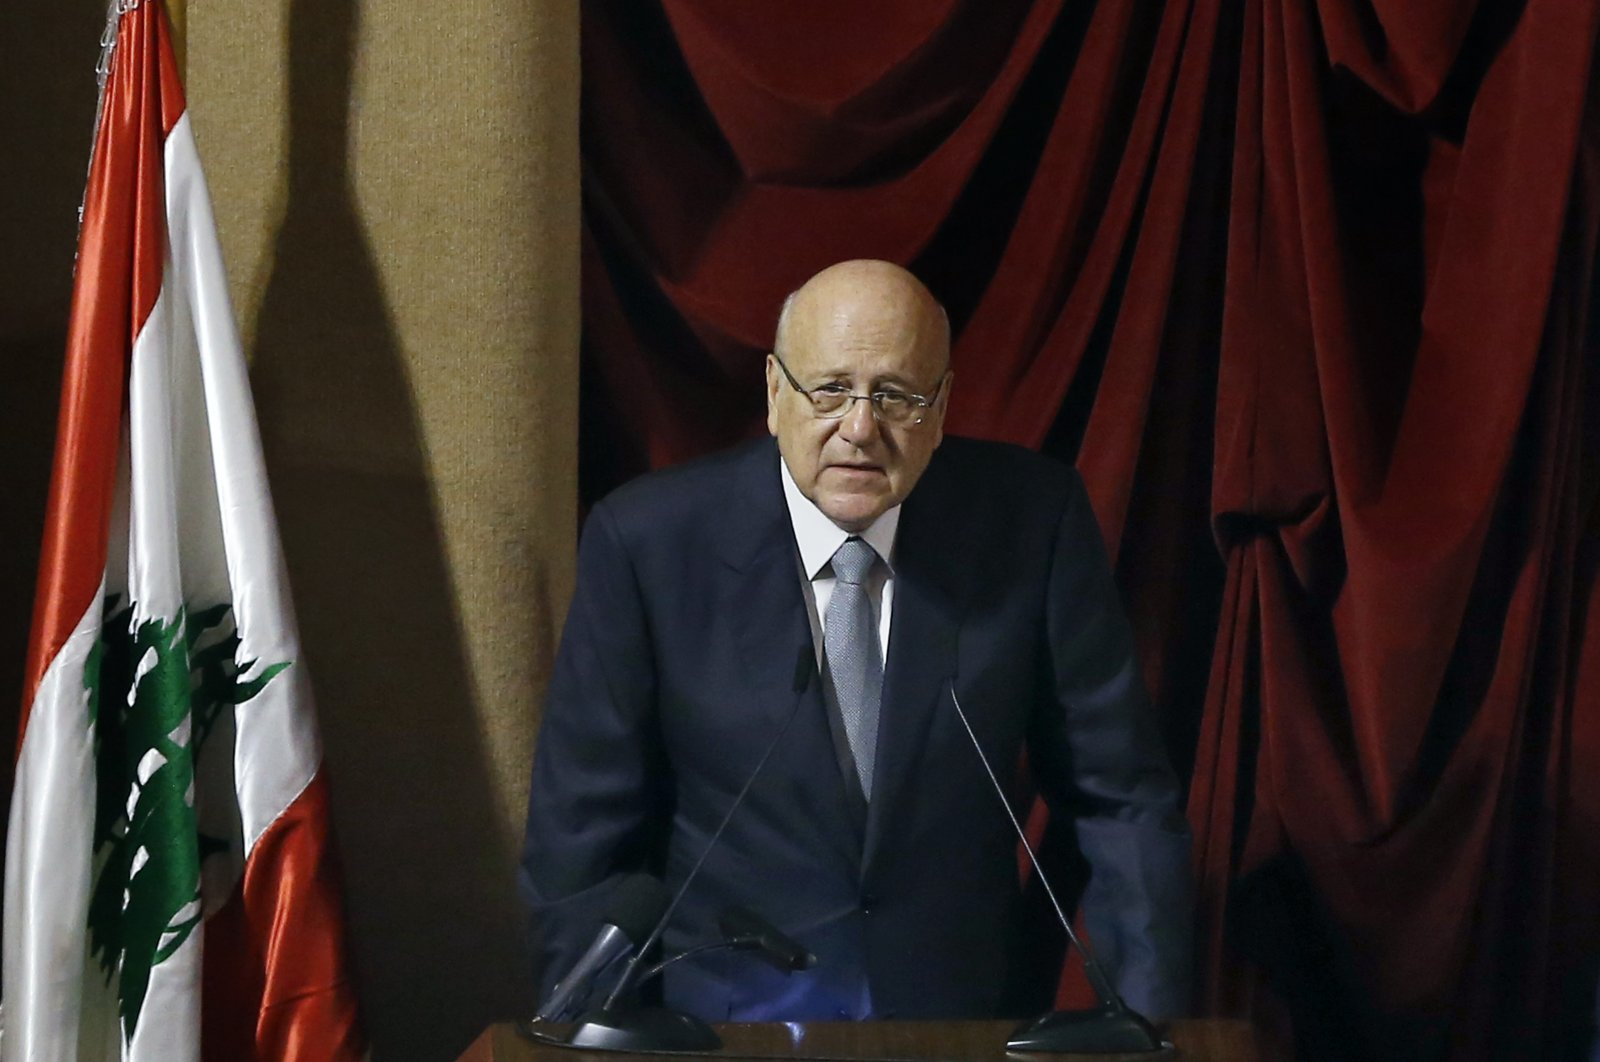 Lebanese Prime Minister Najib Mikati speaks during a parliament session to confirm Lebanon's new government at a Beirut theater known as the UNESCO palace, Lebanon, Monday, Sept. 20, 2021.(AP Photo)